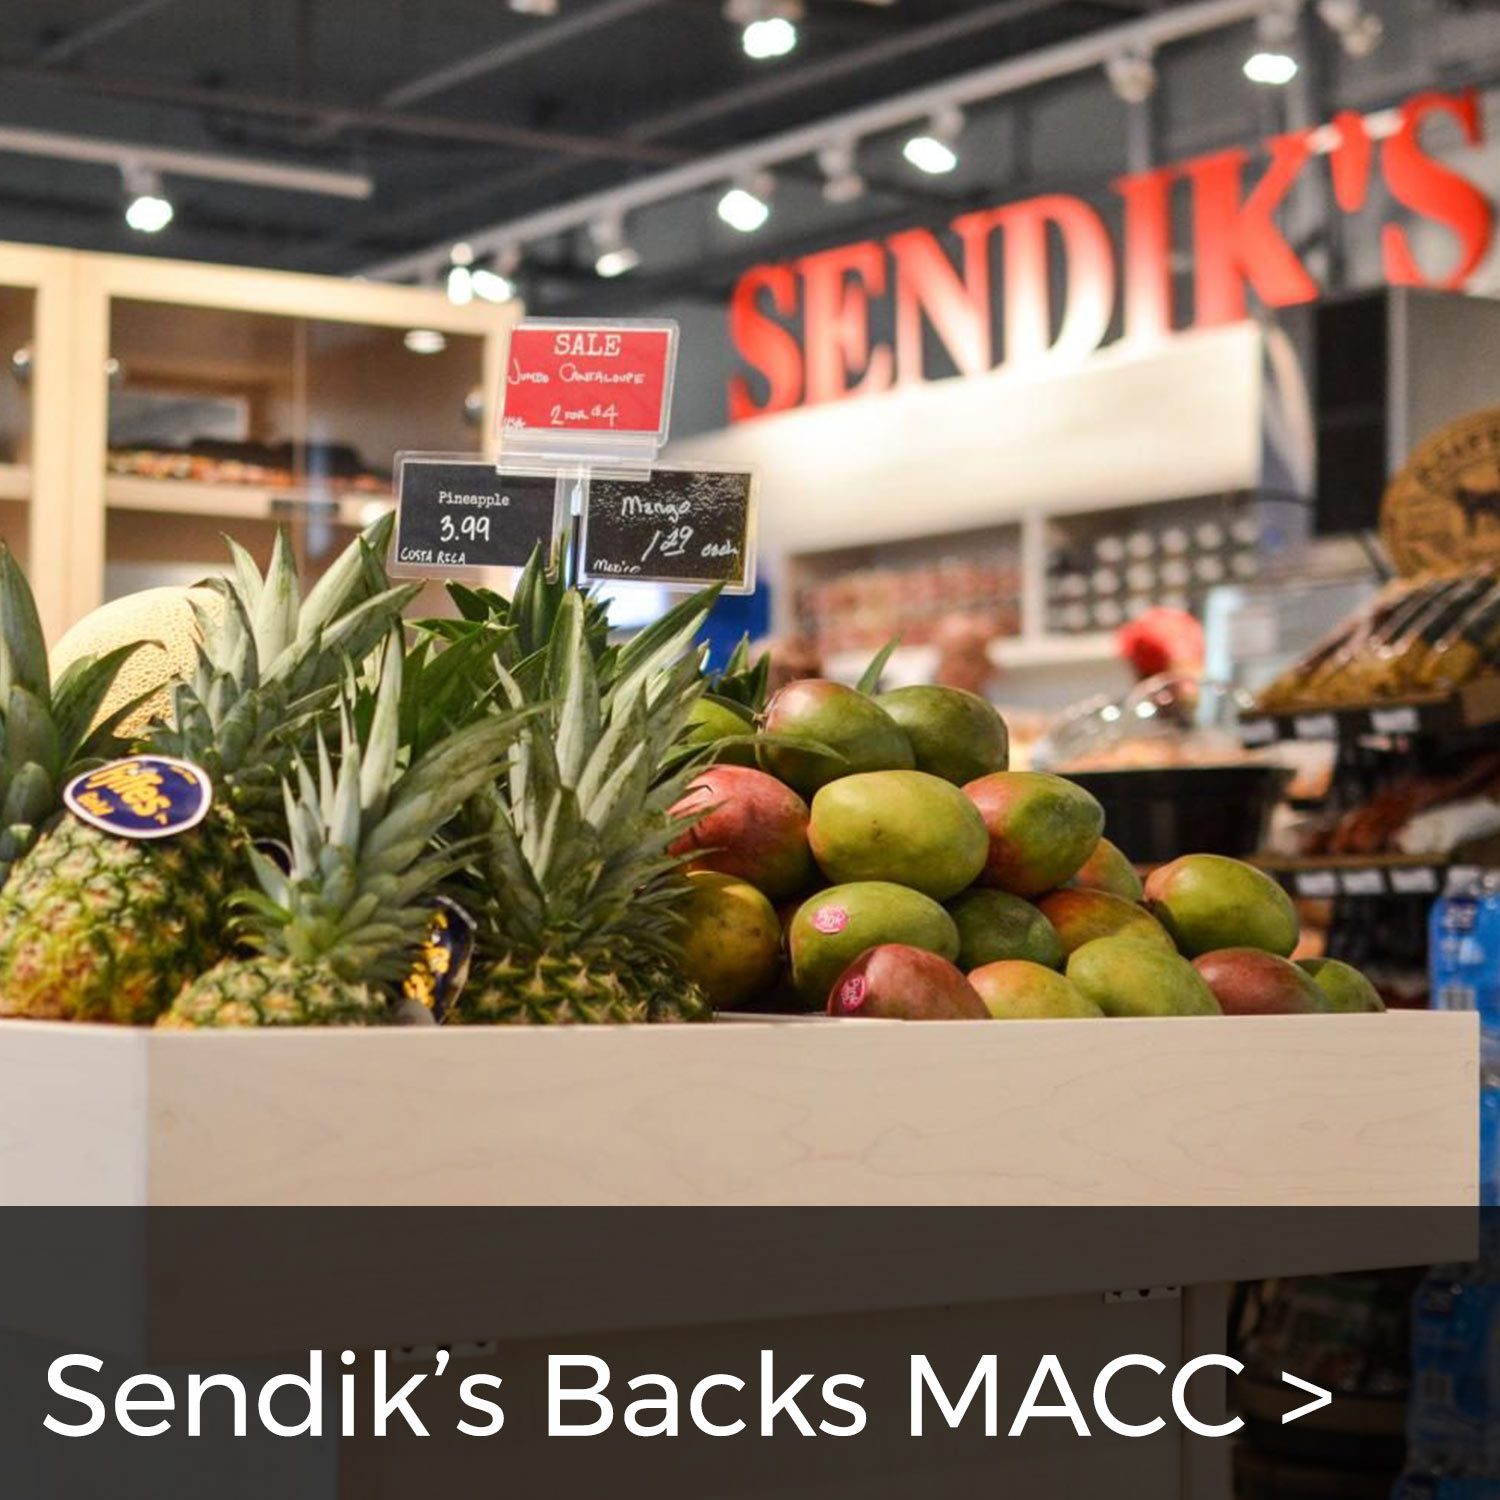 Sendik's Backs MACC